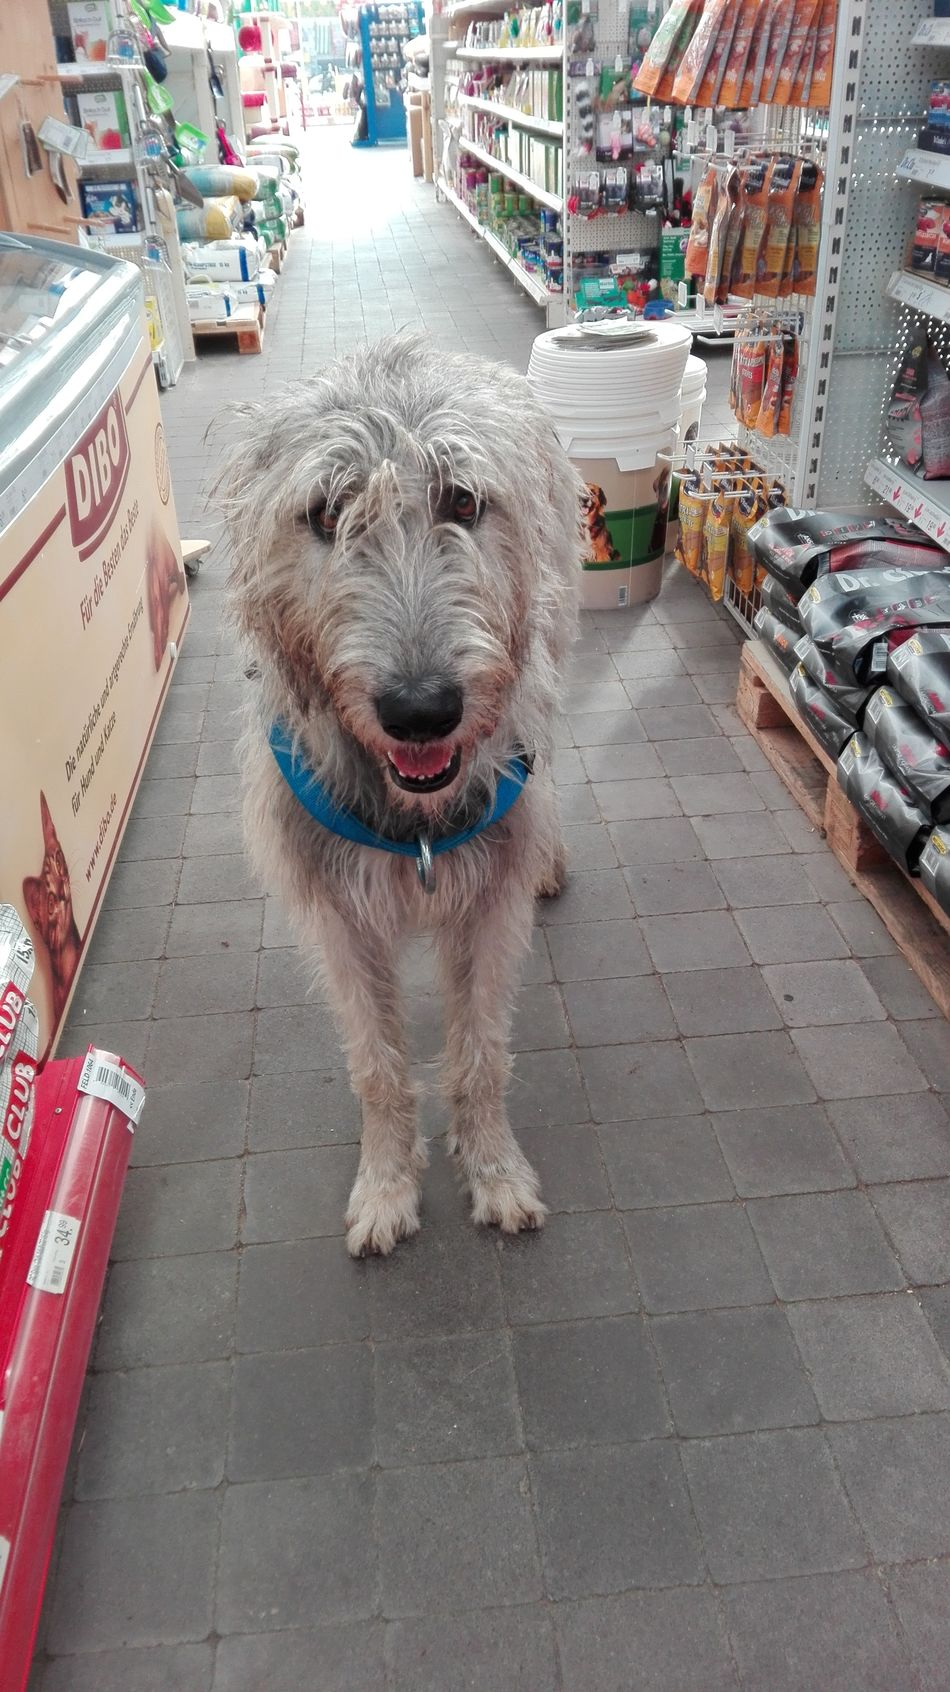 One Animal Domestic Animals Animal Themes Close-up Portrait Dogslife Dogs Of EyeEm Dogs Of Winter Cearnaigh Dog Of The Day Irish Wolfhound Winter 2017 February 2017 Pet Store Petstore Trip Dog Dog Food